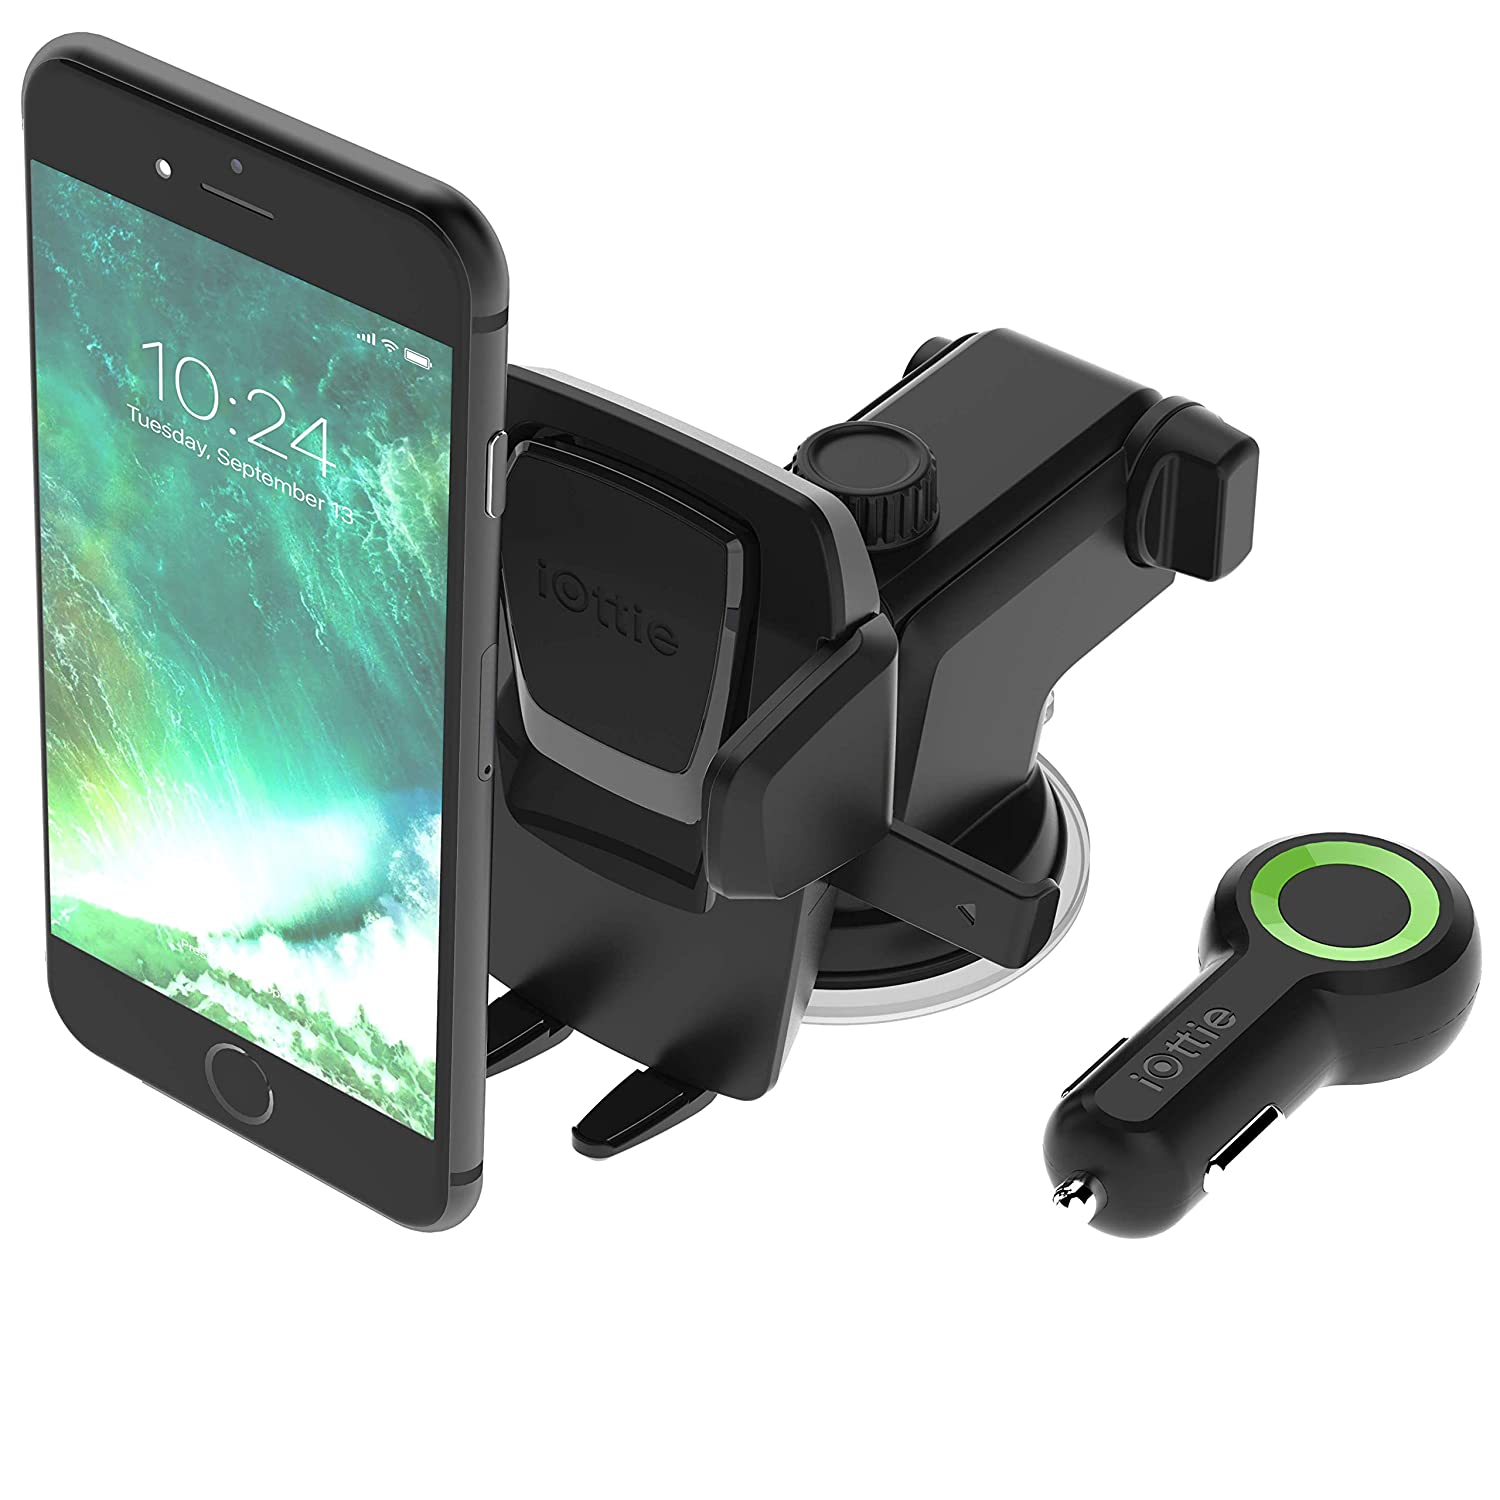 iOttie Easy One Touch 3 (V2.0) Car Mount Universal Phone Holder for iPhone X 8/8 Plus 7 7 Plus 6s Plus 6s 6 SE Samsung Galaxy S9 S9 Plus S8 Plus S8 Edge S7 S6 Note 8 5 HLCRIO120